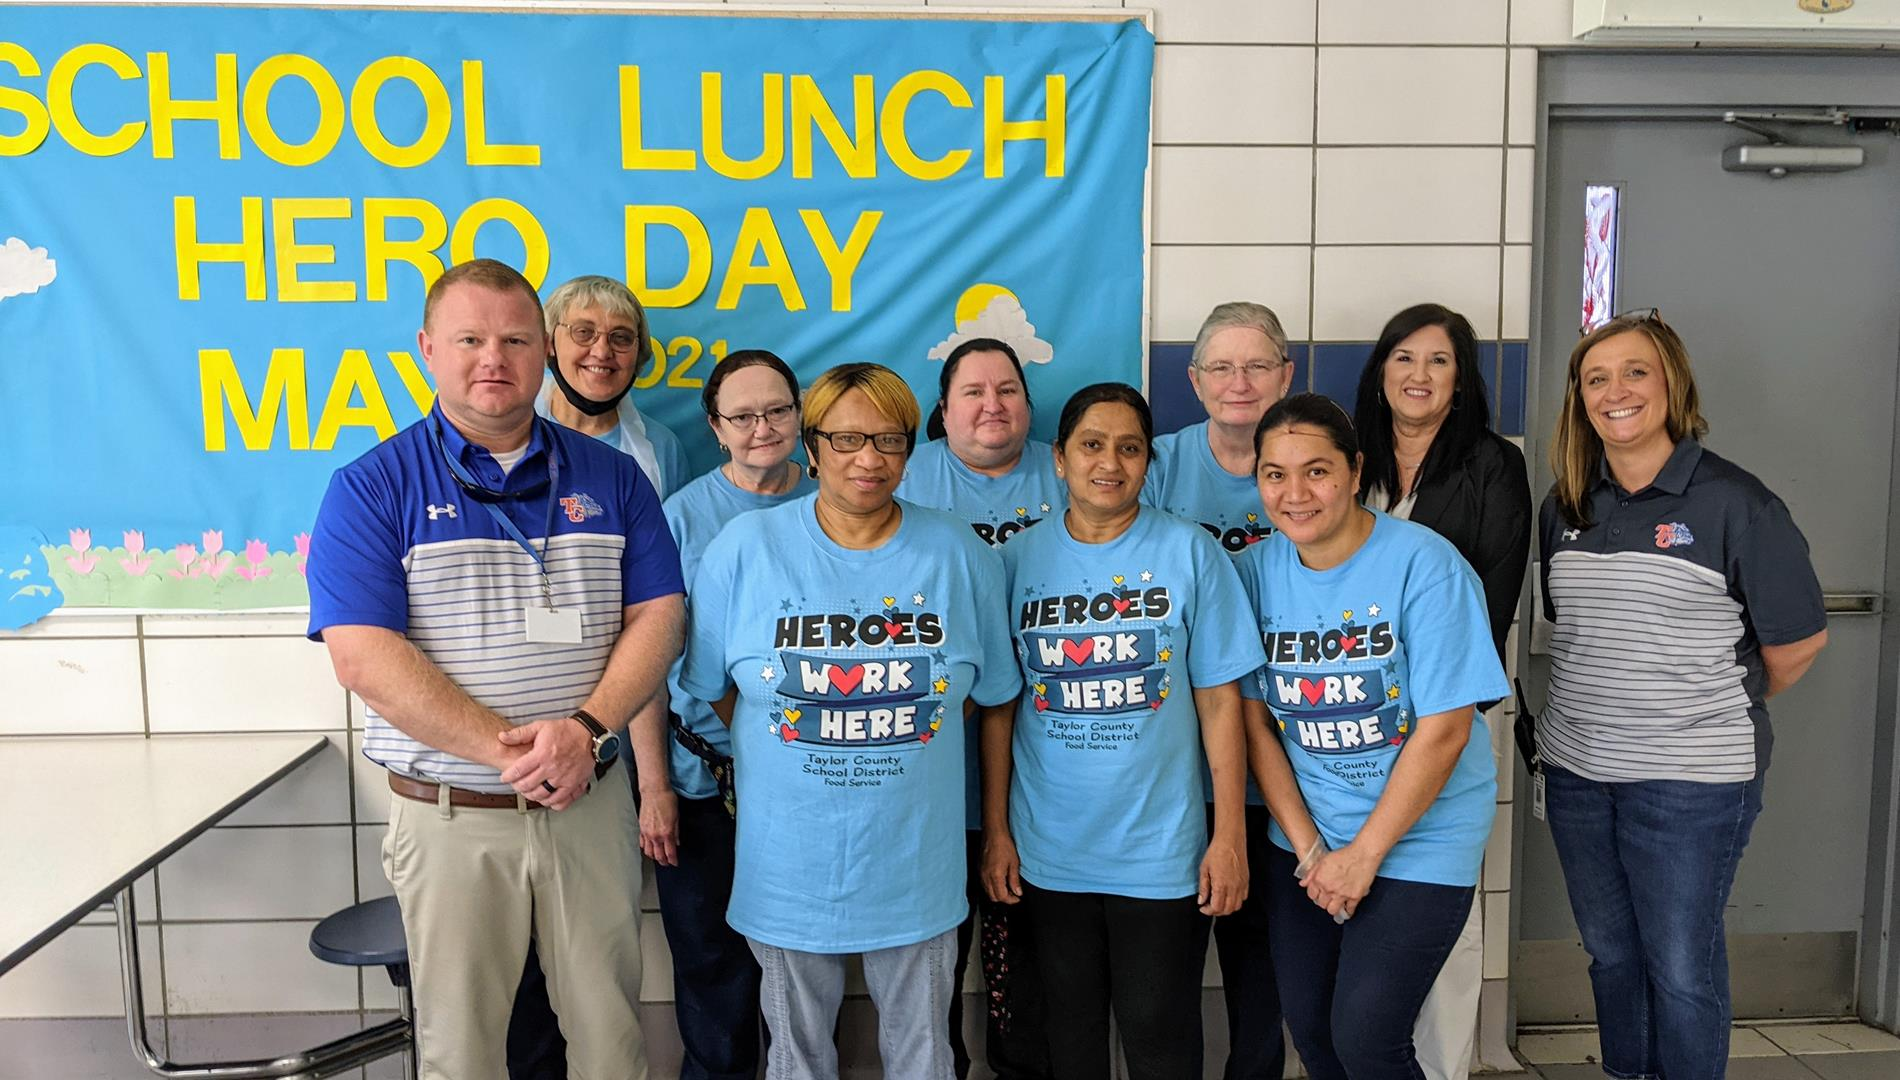 TCHS Lunchroom staff and administrators